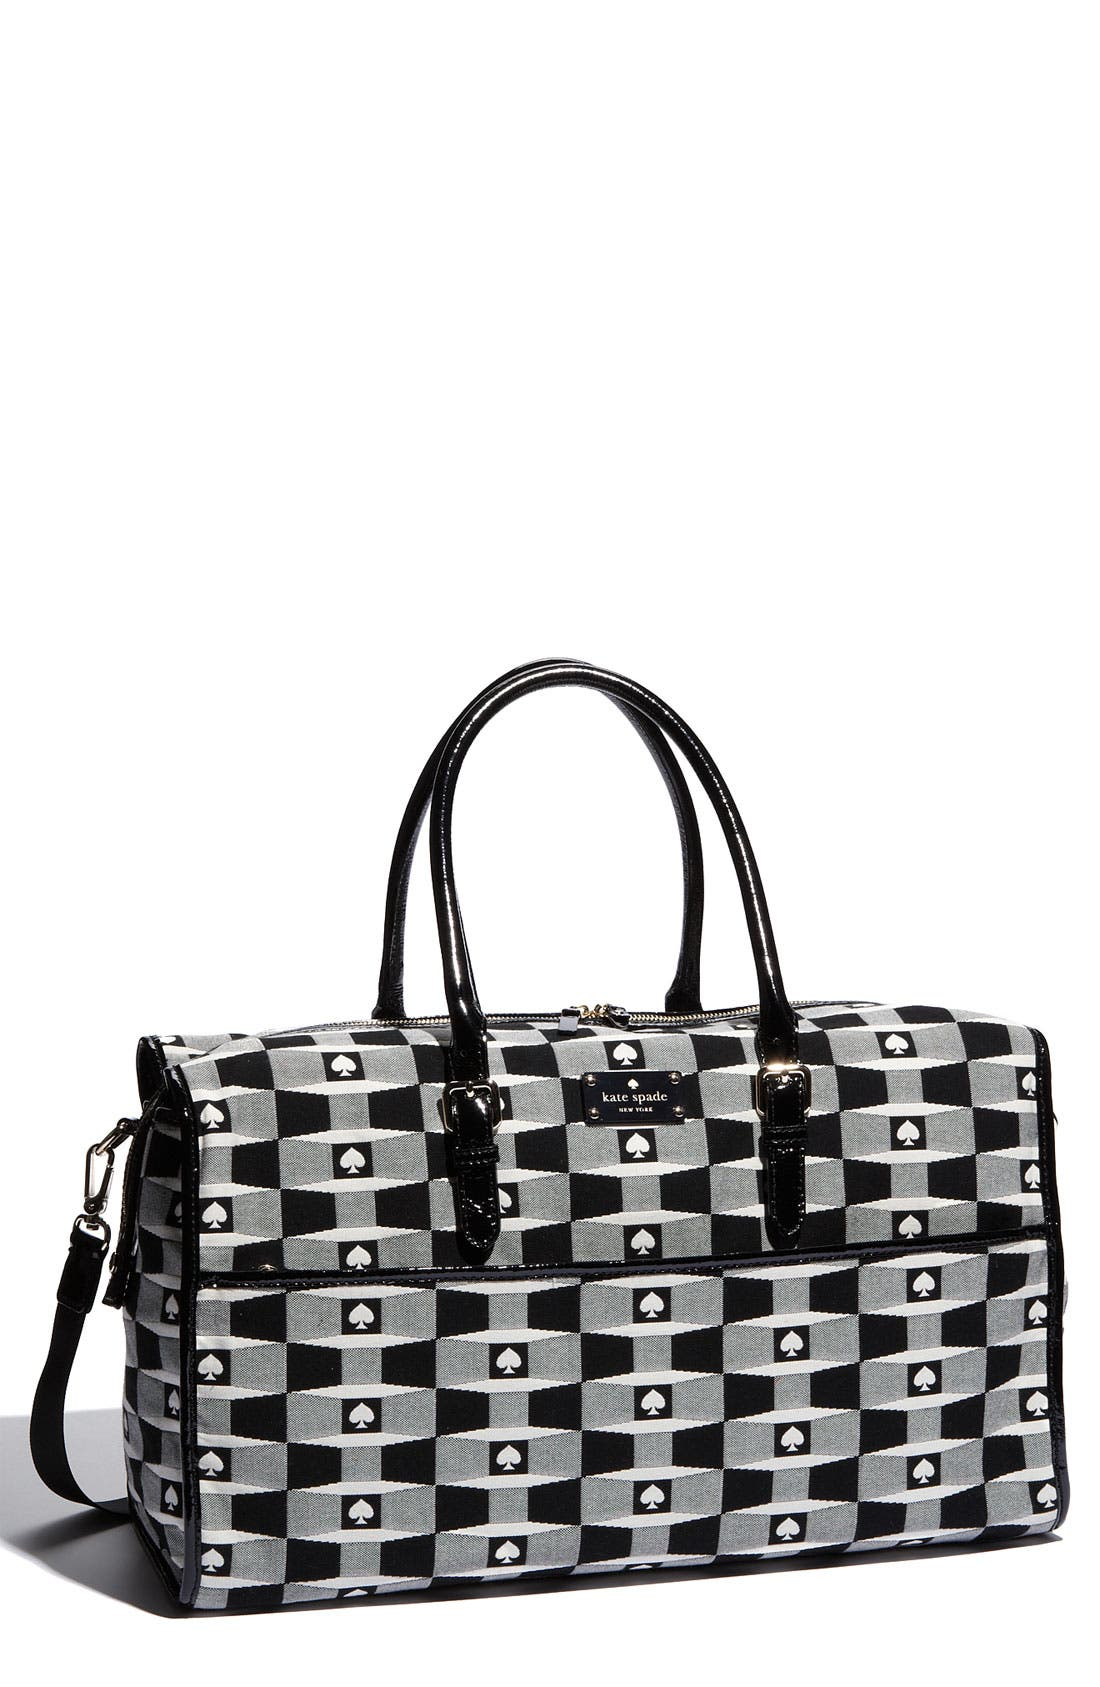 Main Image - kate spade new york 'adara' tote